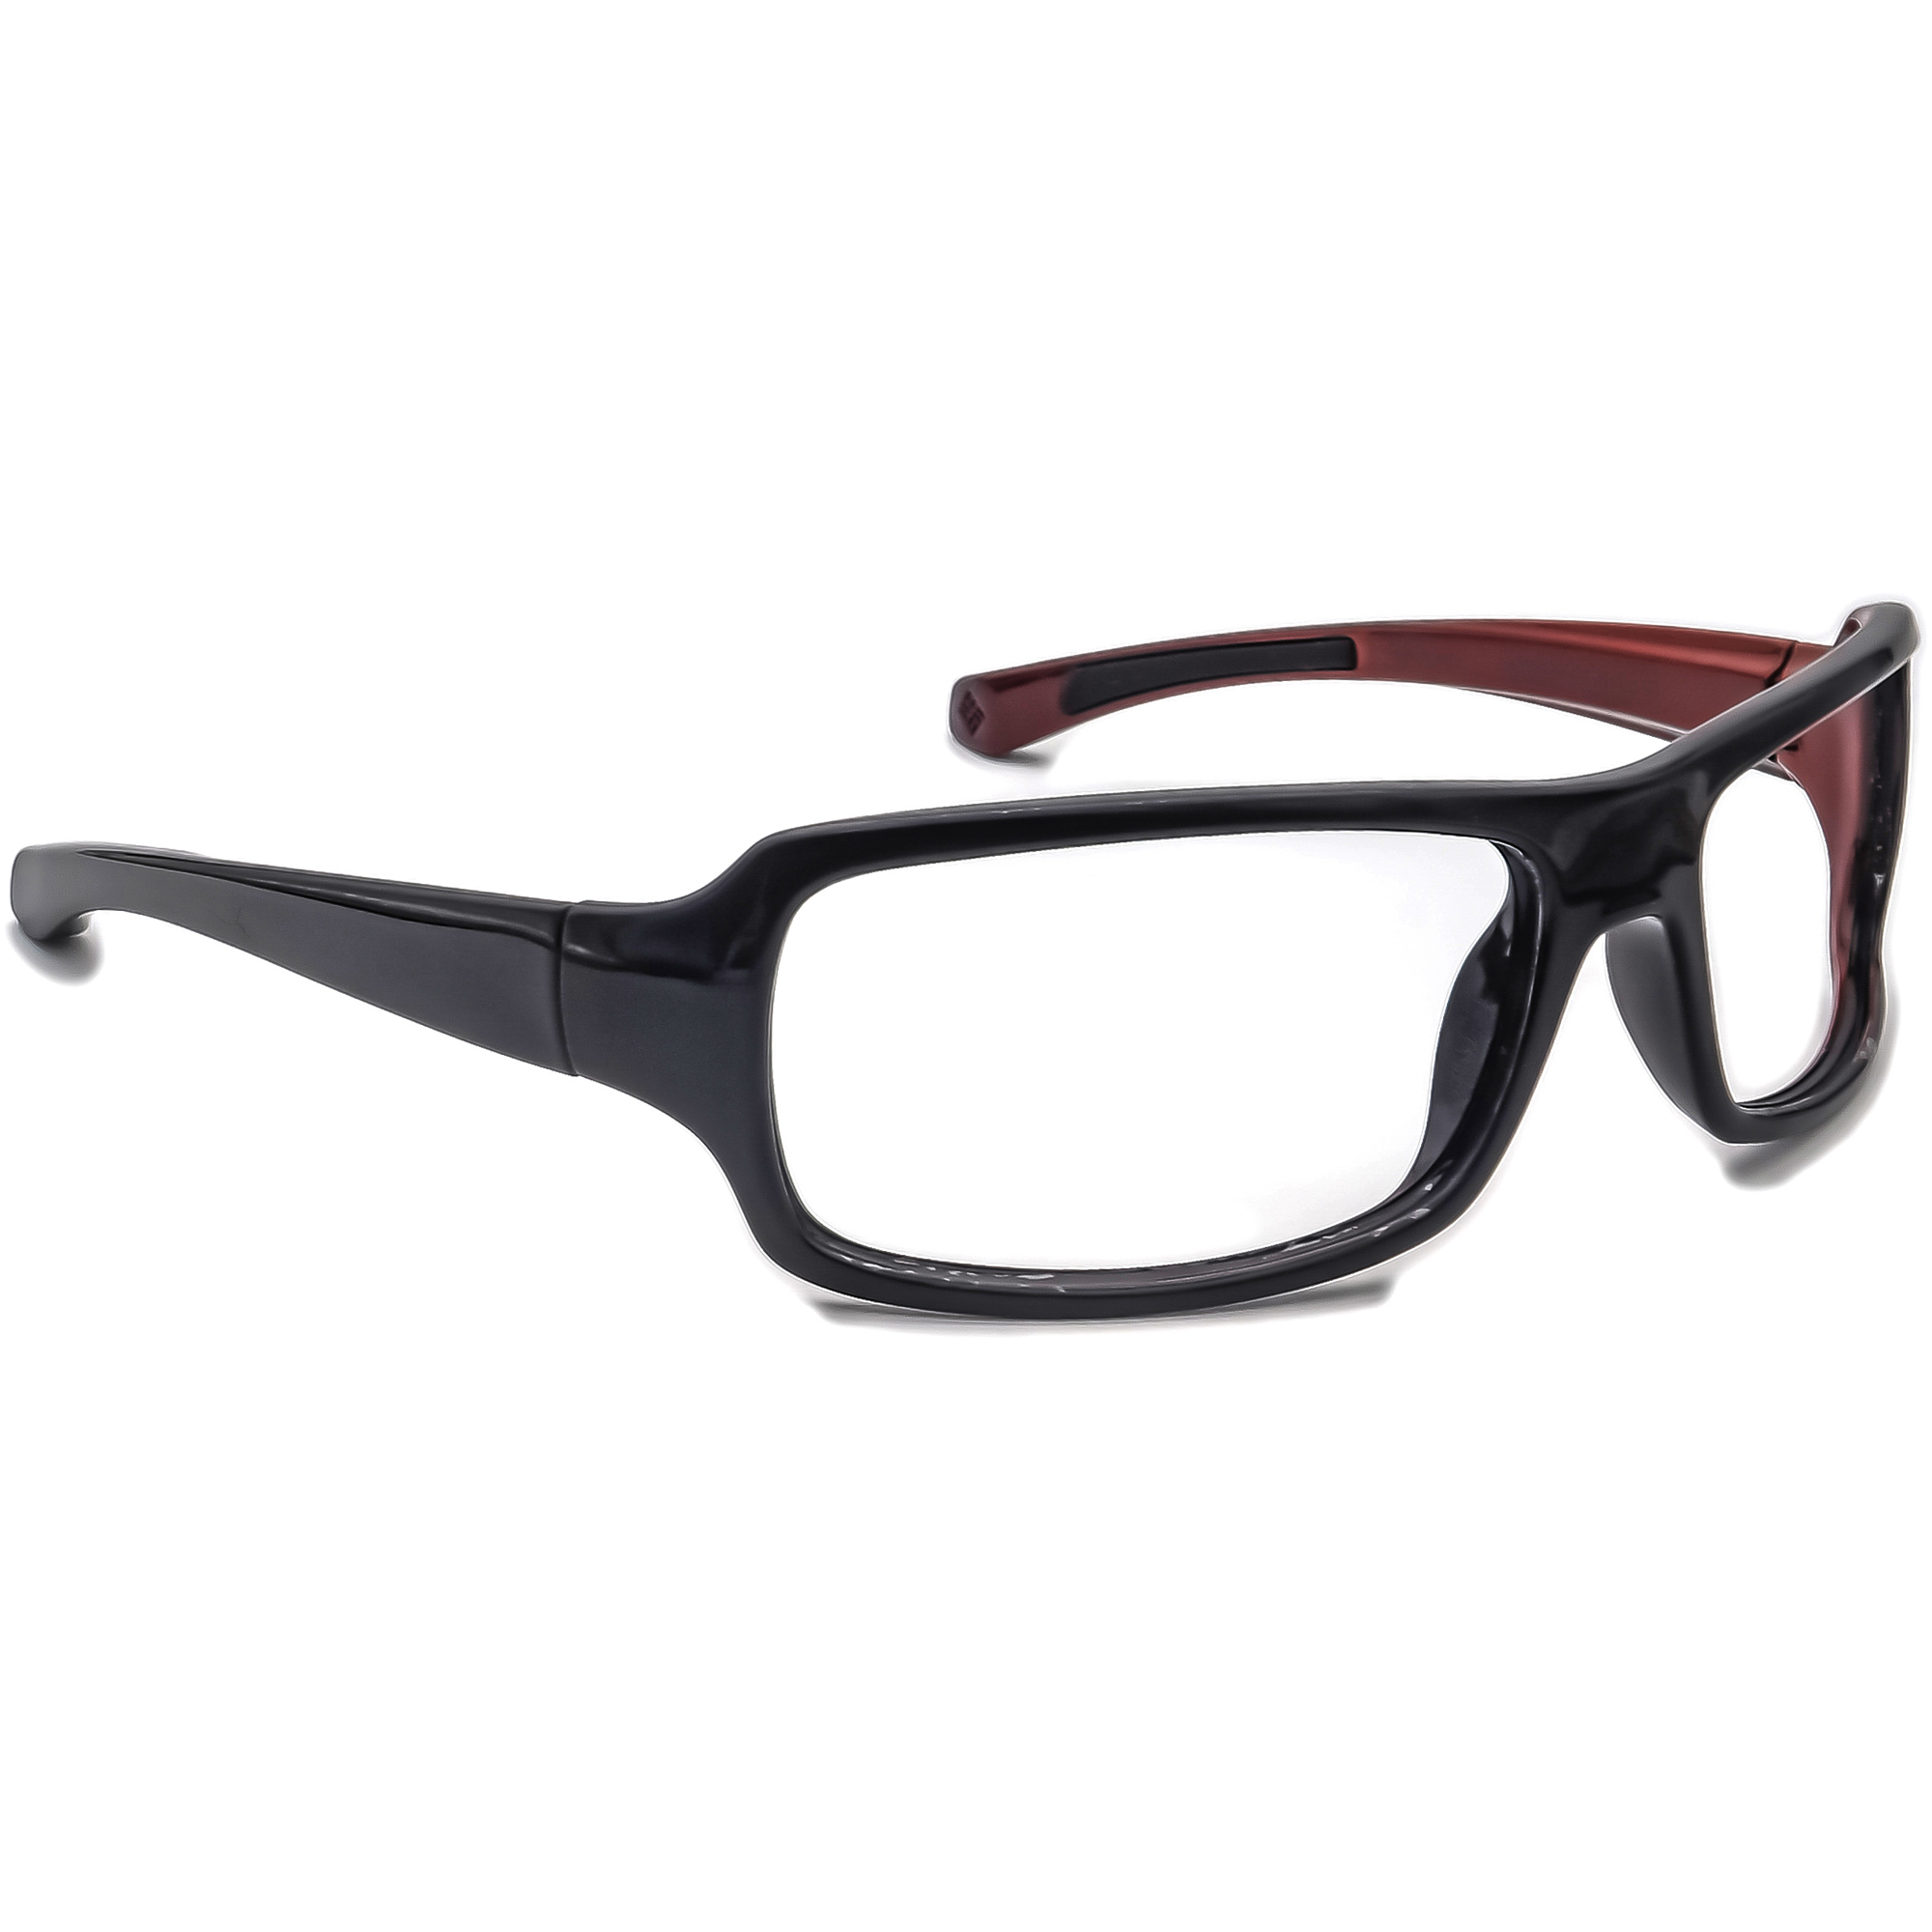 Columbia Humboldt C01 Sunglasses Frame Only